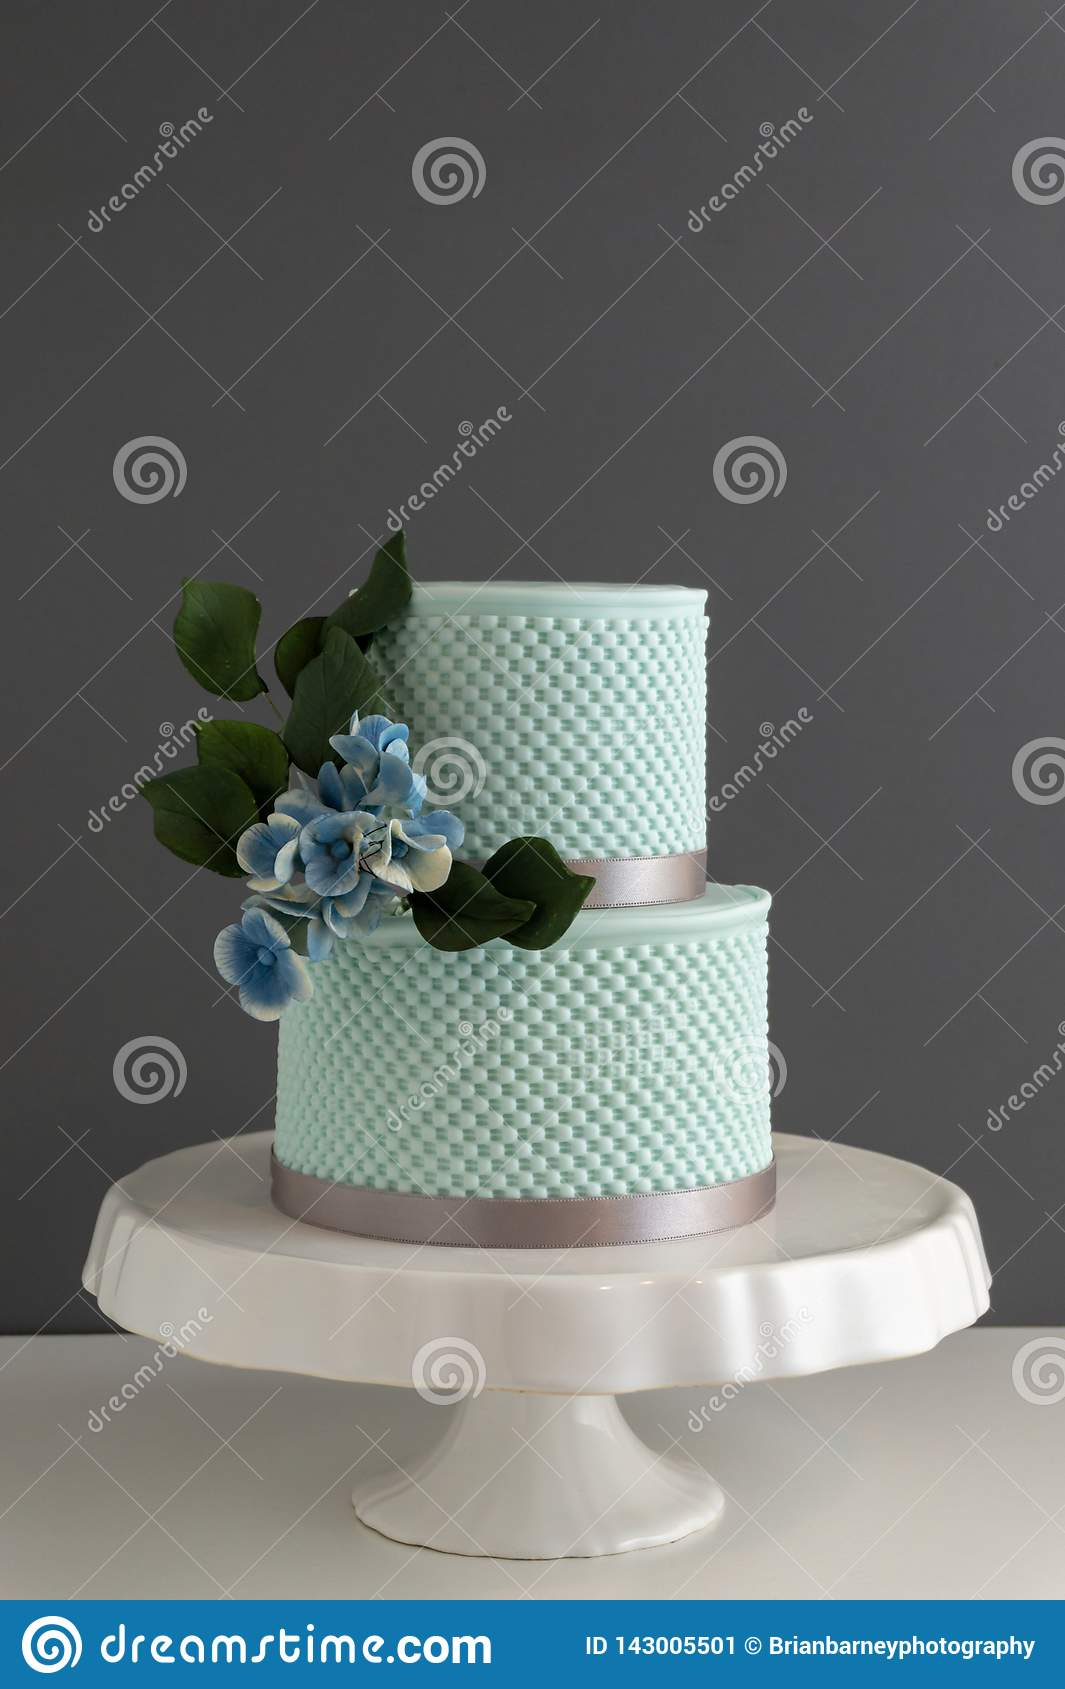 Groovy Elegant 2 Tier Wedding Cake With Texture And Edible Sugar Flowers Birthday Cards Printable Nowaargucafe Filternl